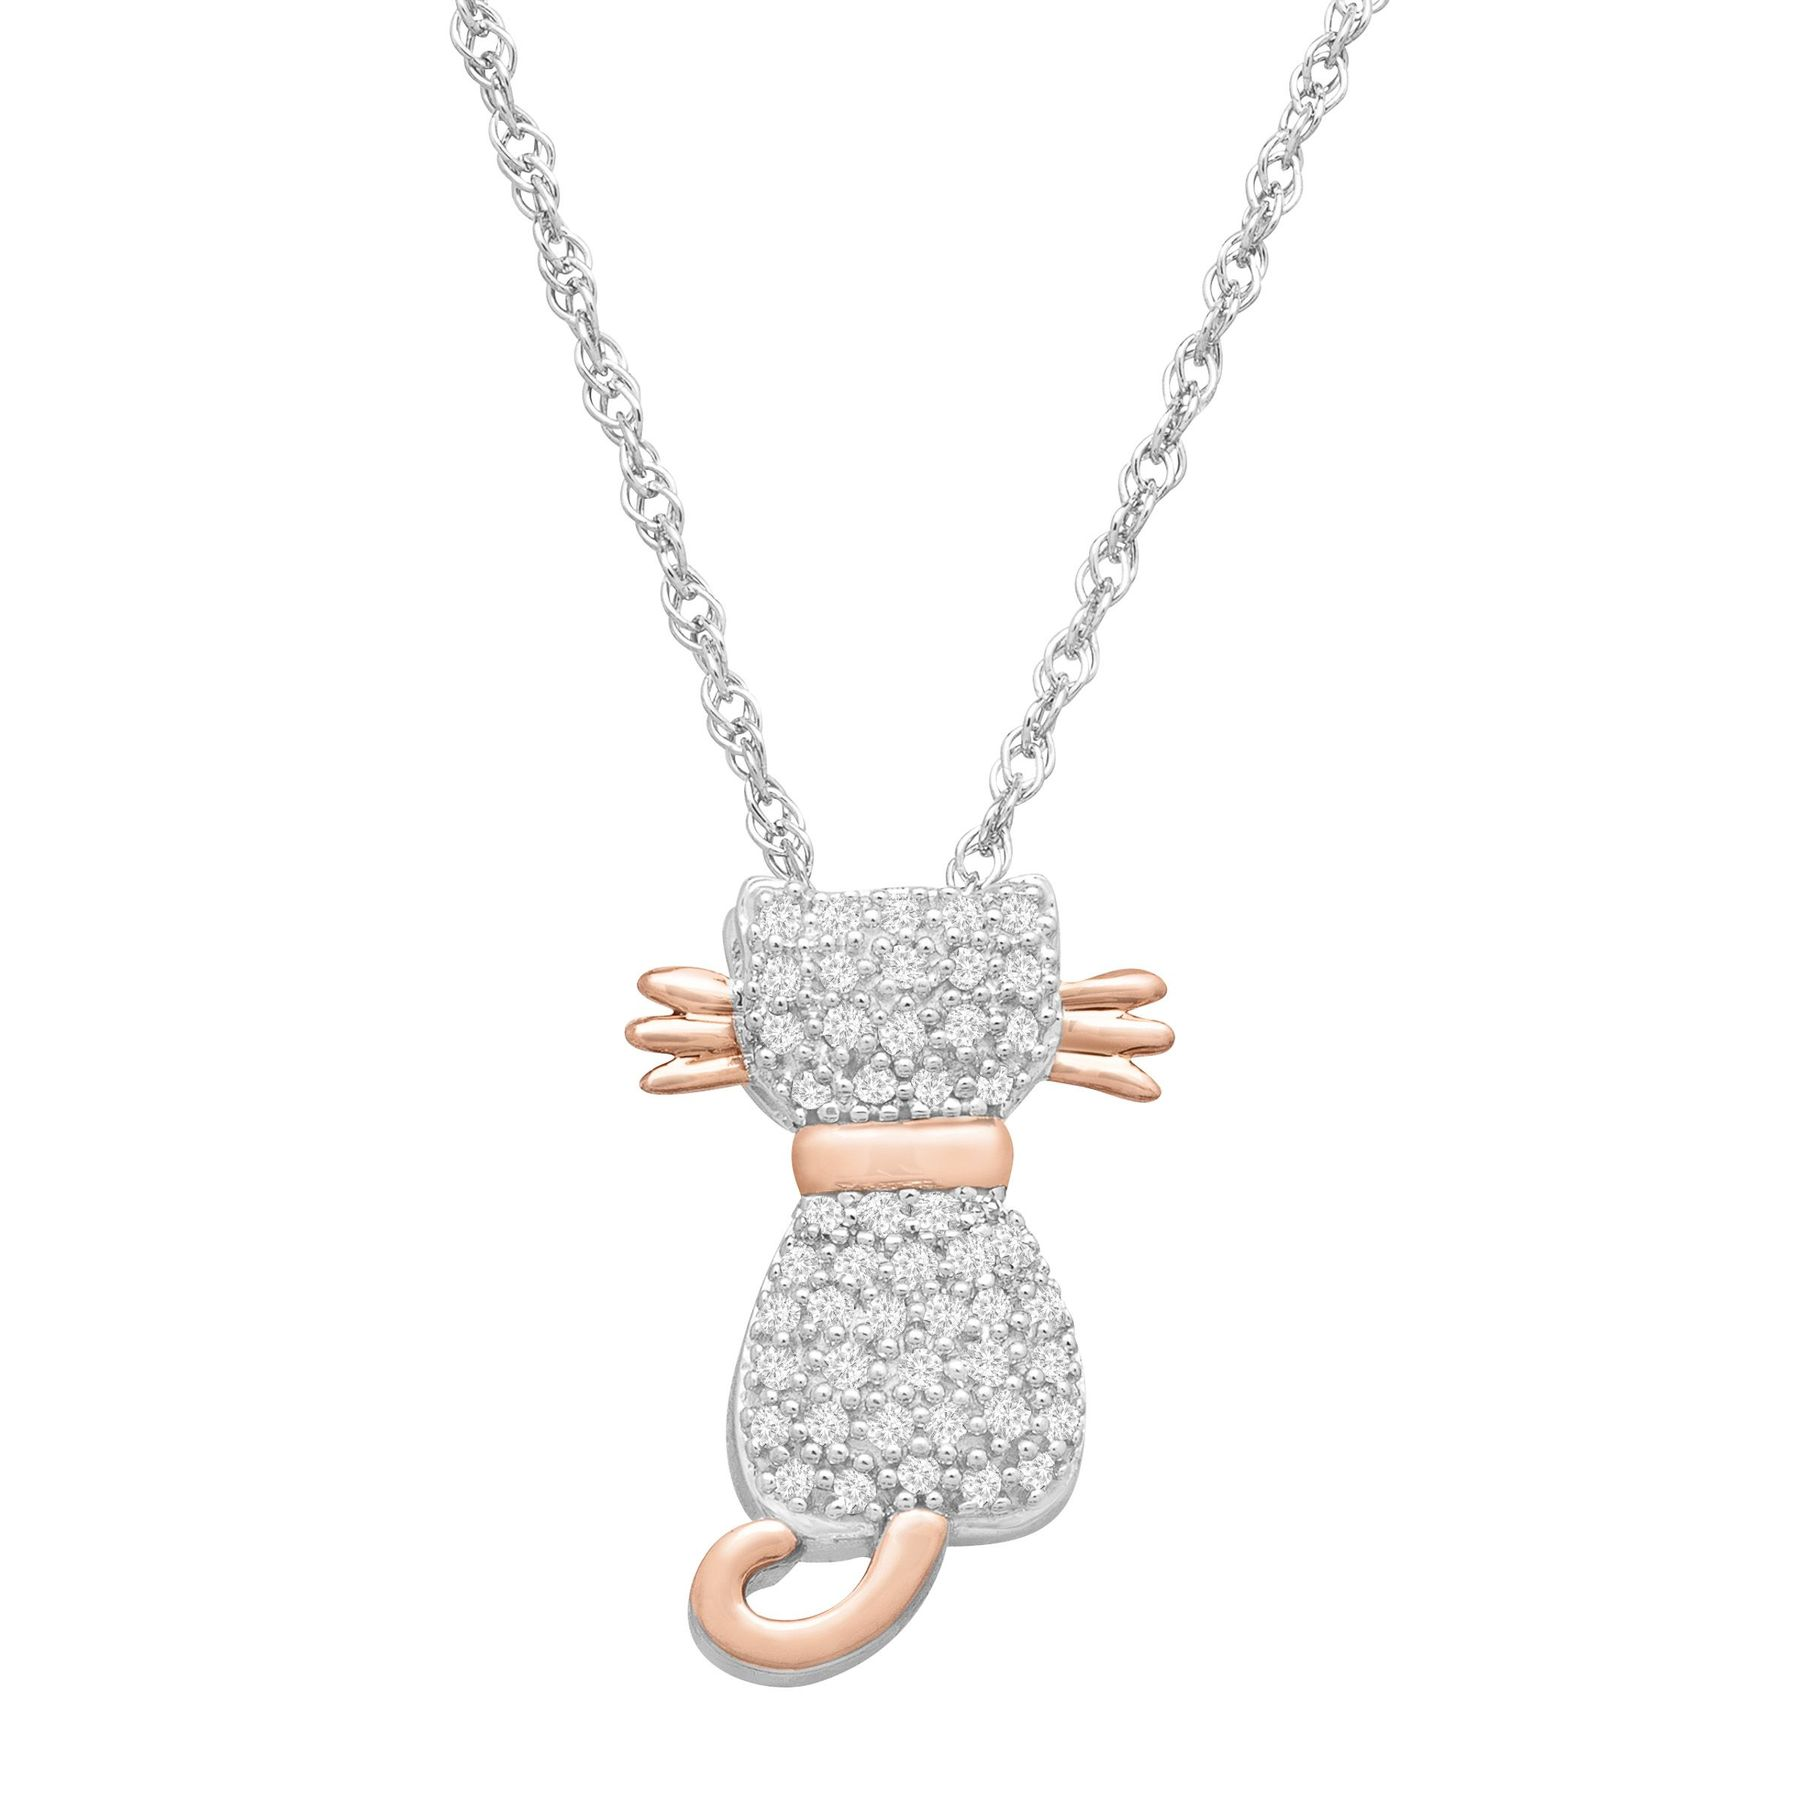 15 ct diamond cat pendant necklace in sterling silver 14k rose 15 ct diamond cat pendant aloadofball Choice Image